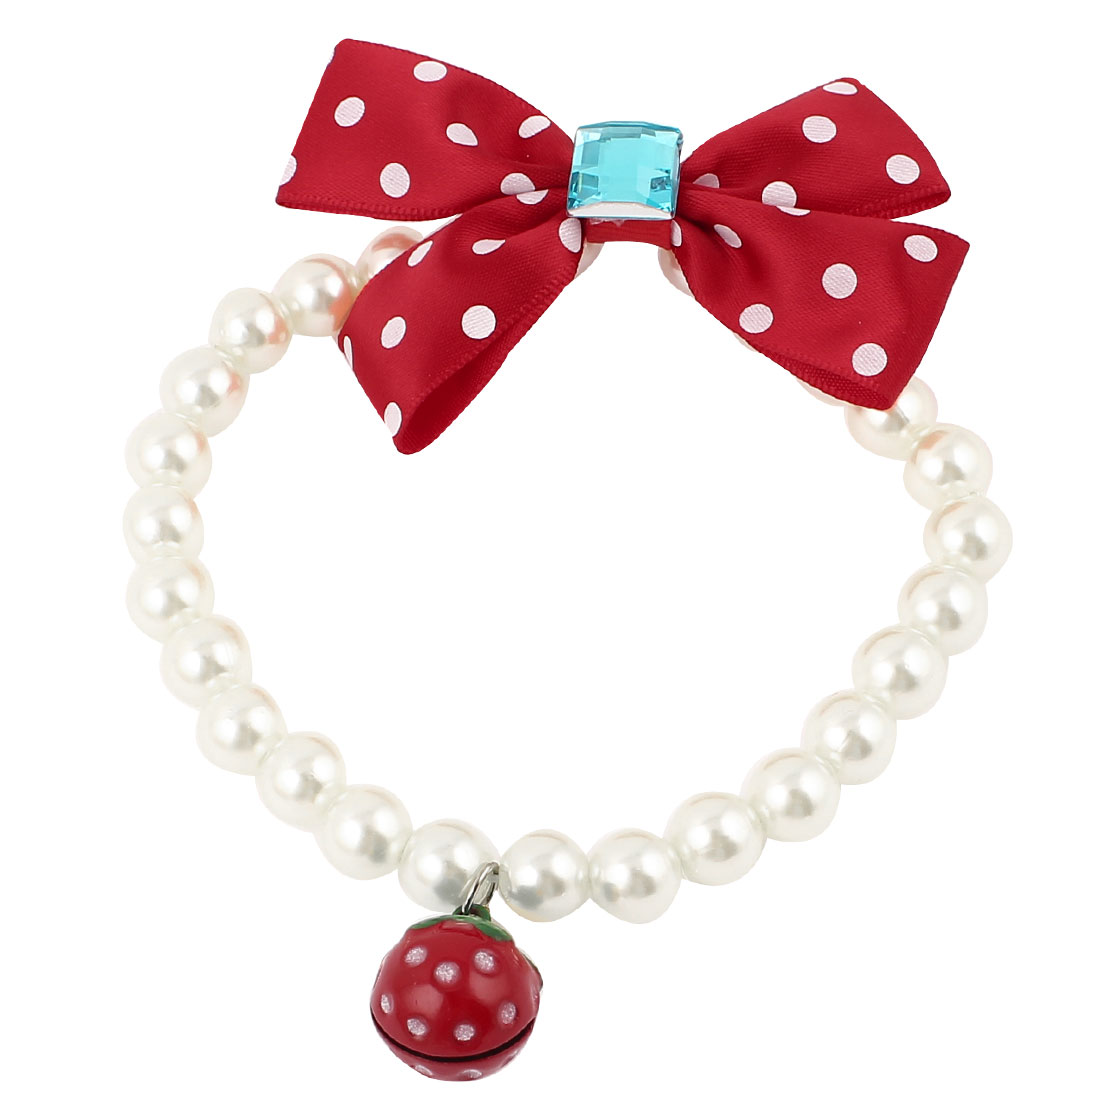 Metal Bell Pendant Bowknot Accent Pet Dog Plastic Beads Pearls Collar Necklace White Red S